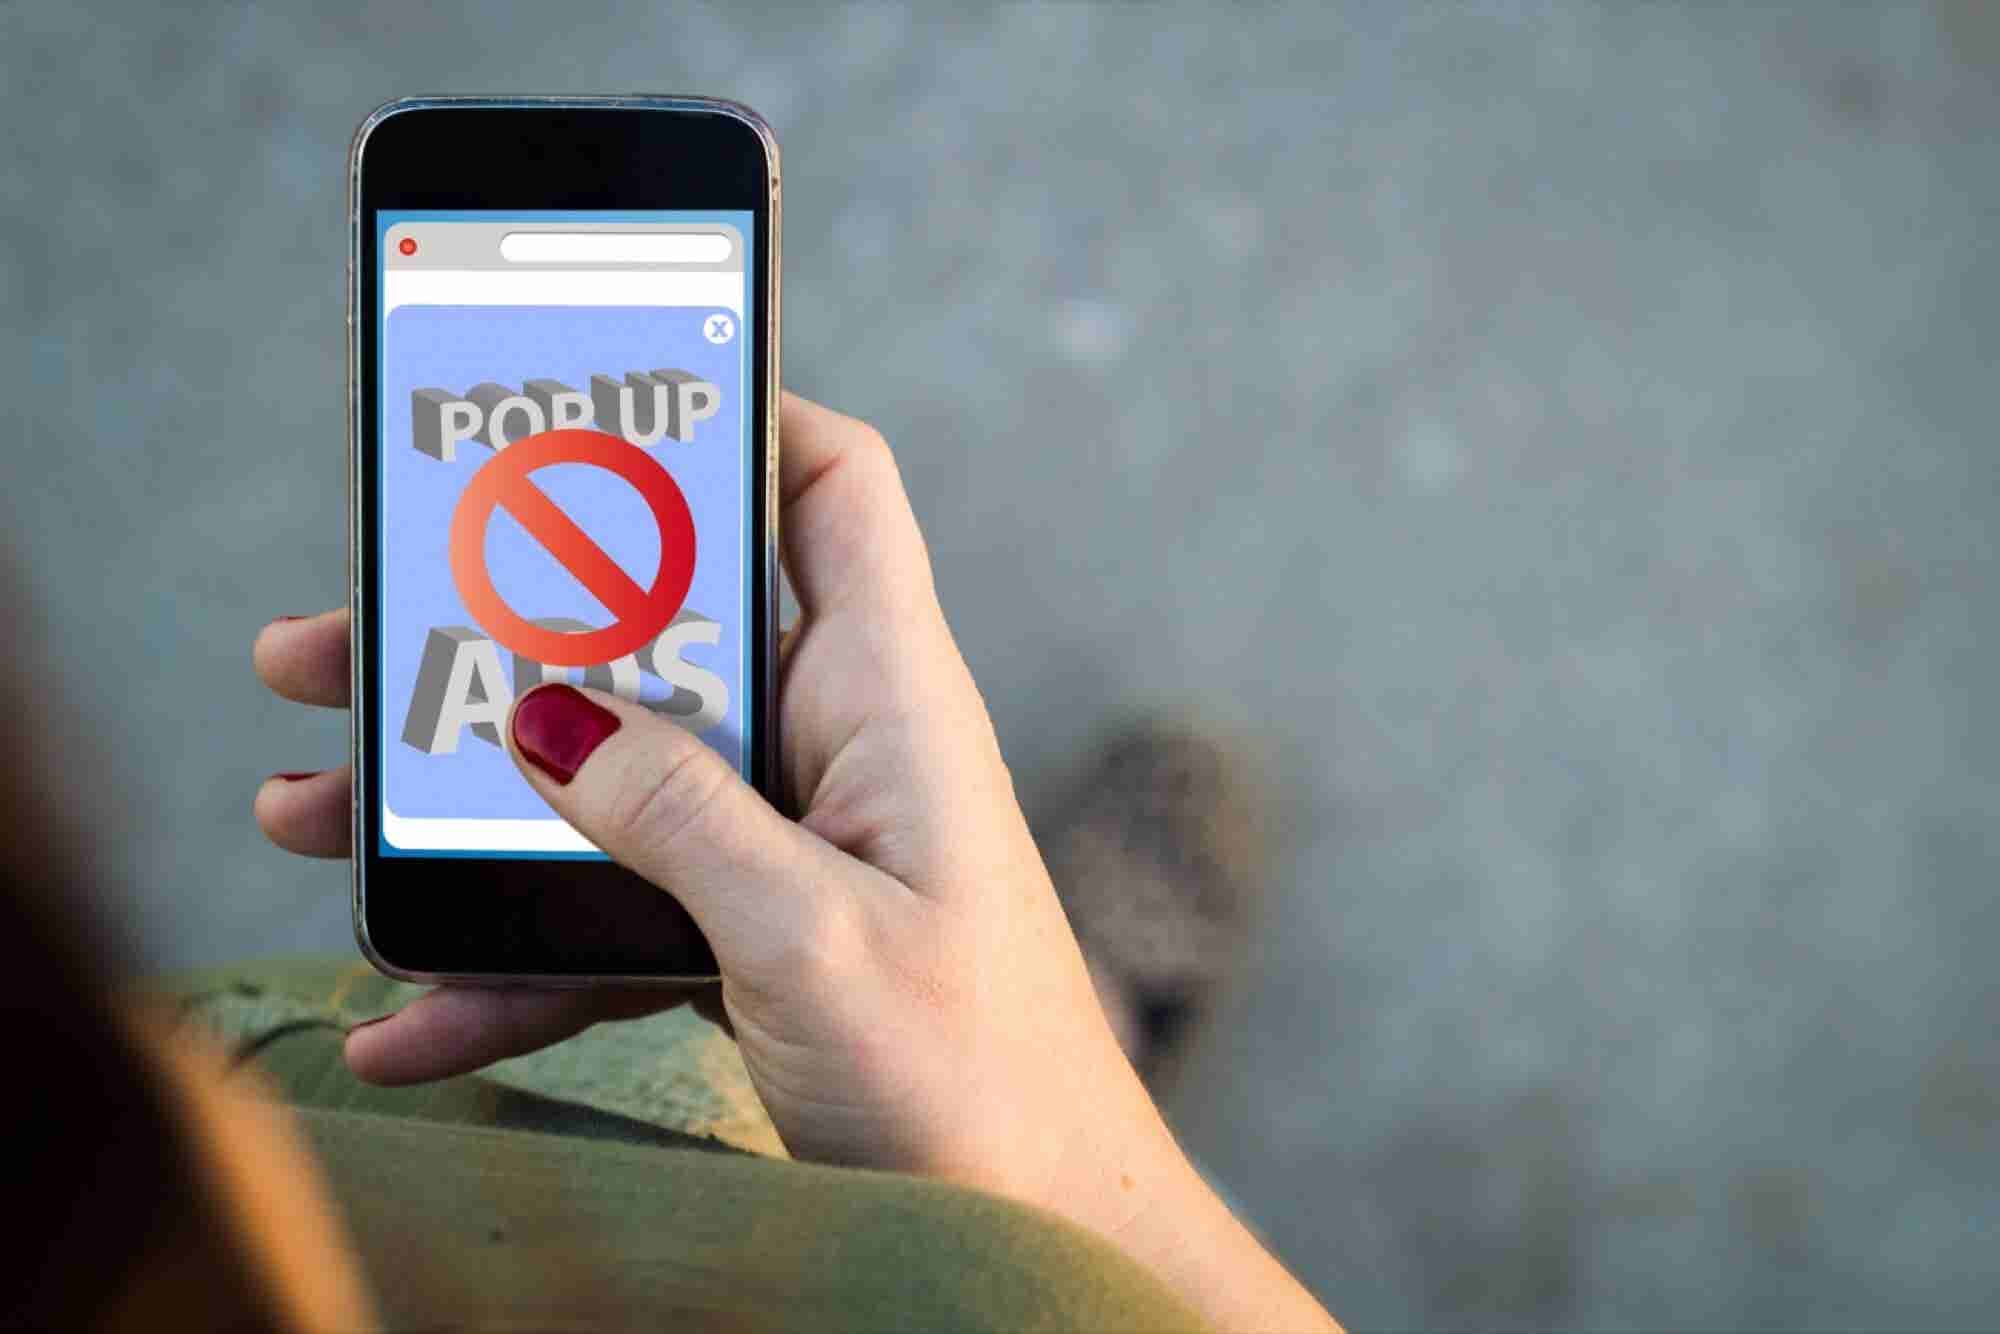 The Digital Marketer's Quick Guide to iOS 9 Ad Blockers